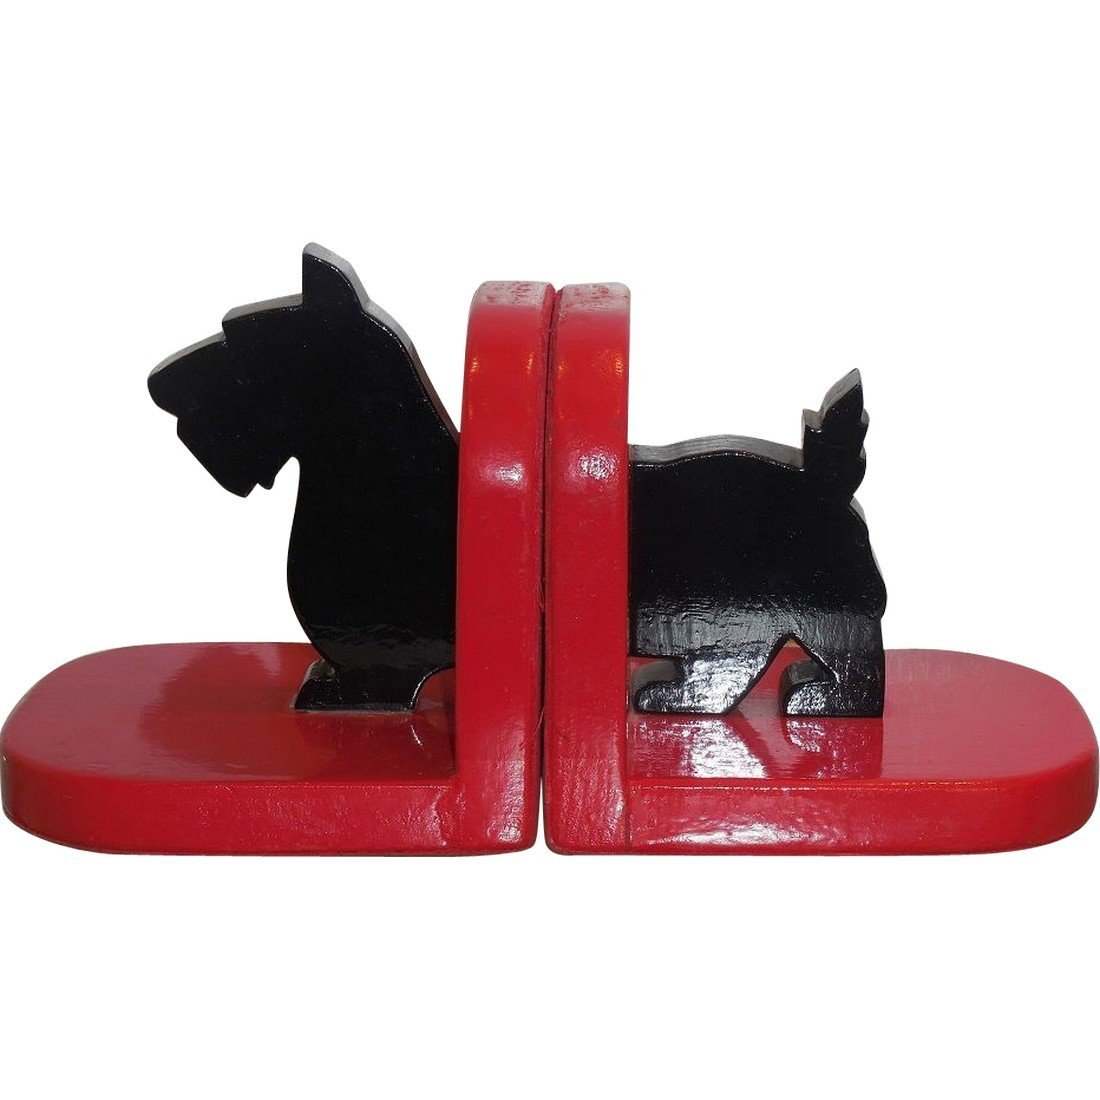 Antique Folk Art Painted Wood Cut Out Scotty Bookends